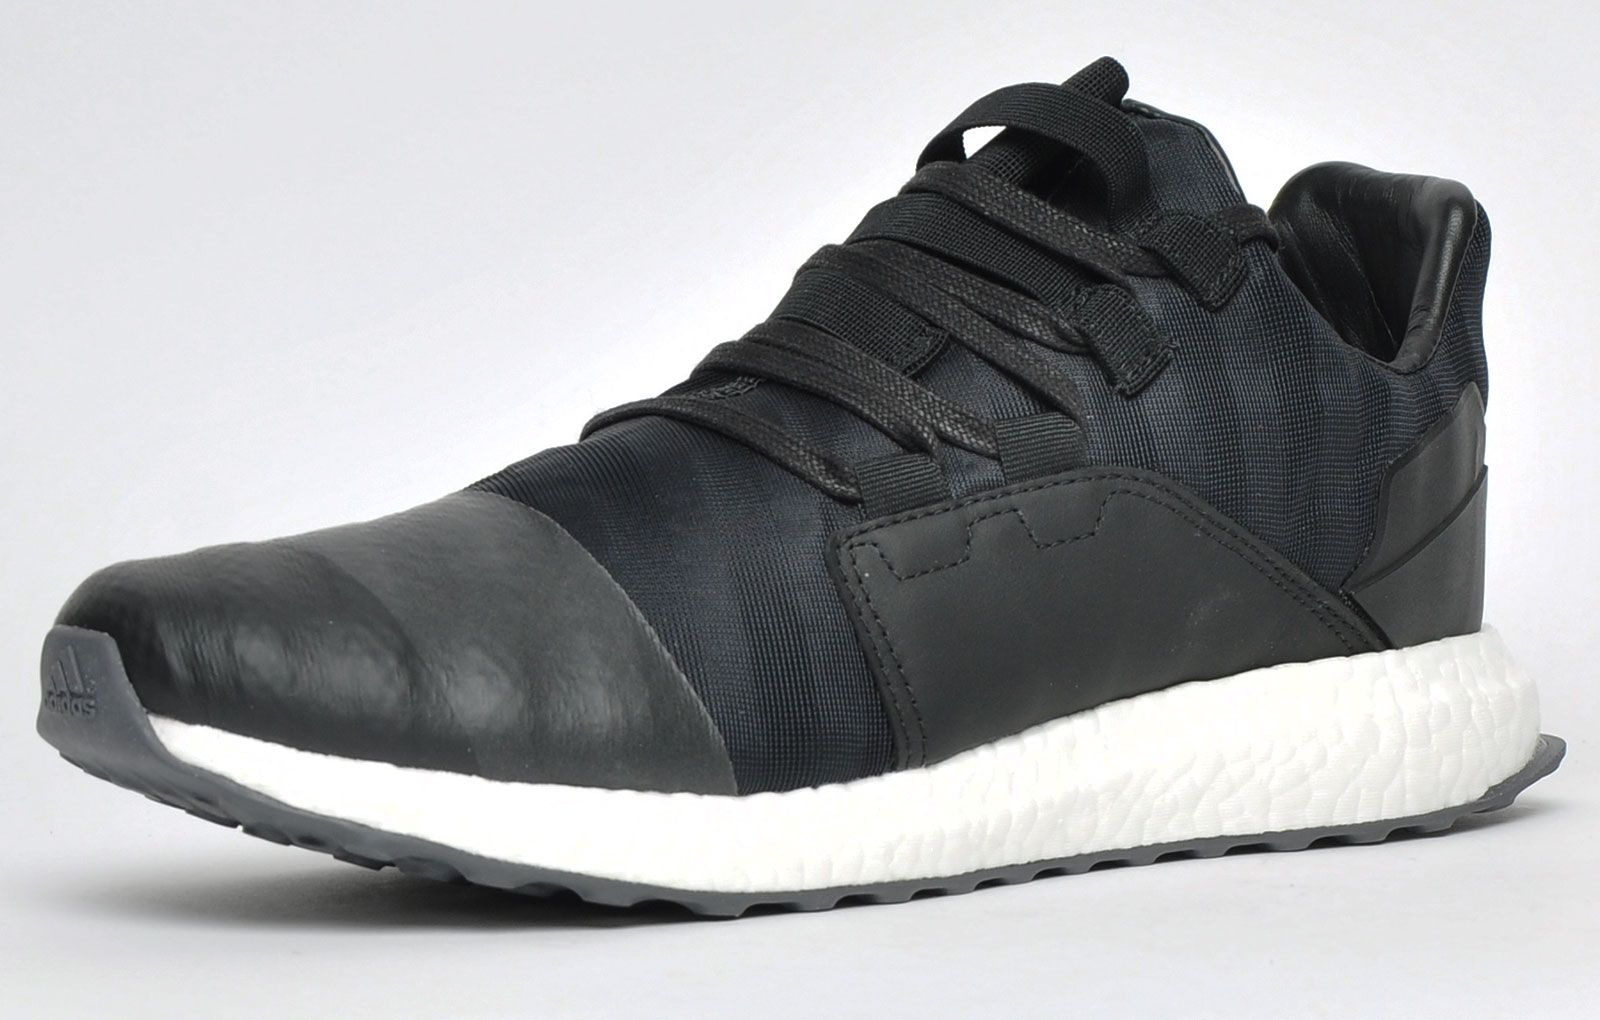 Adidas Y-3 Kozoko Low Boost Mens